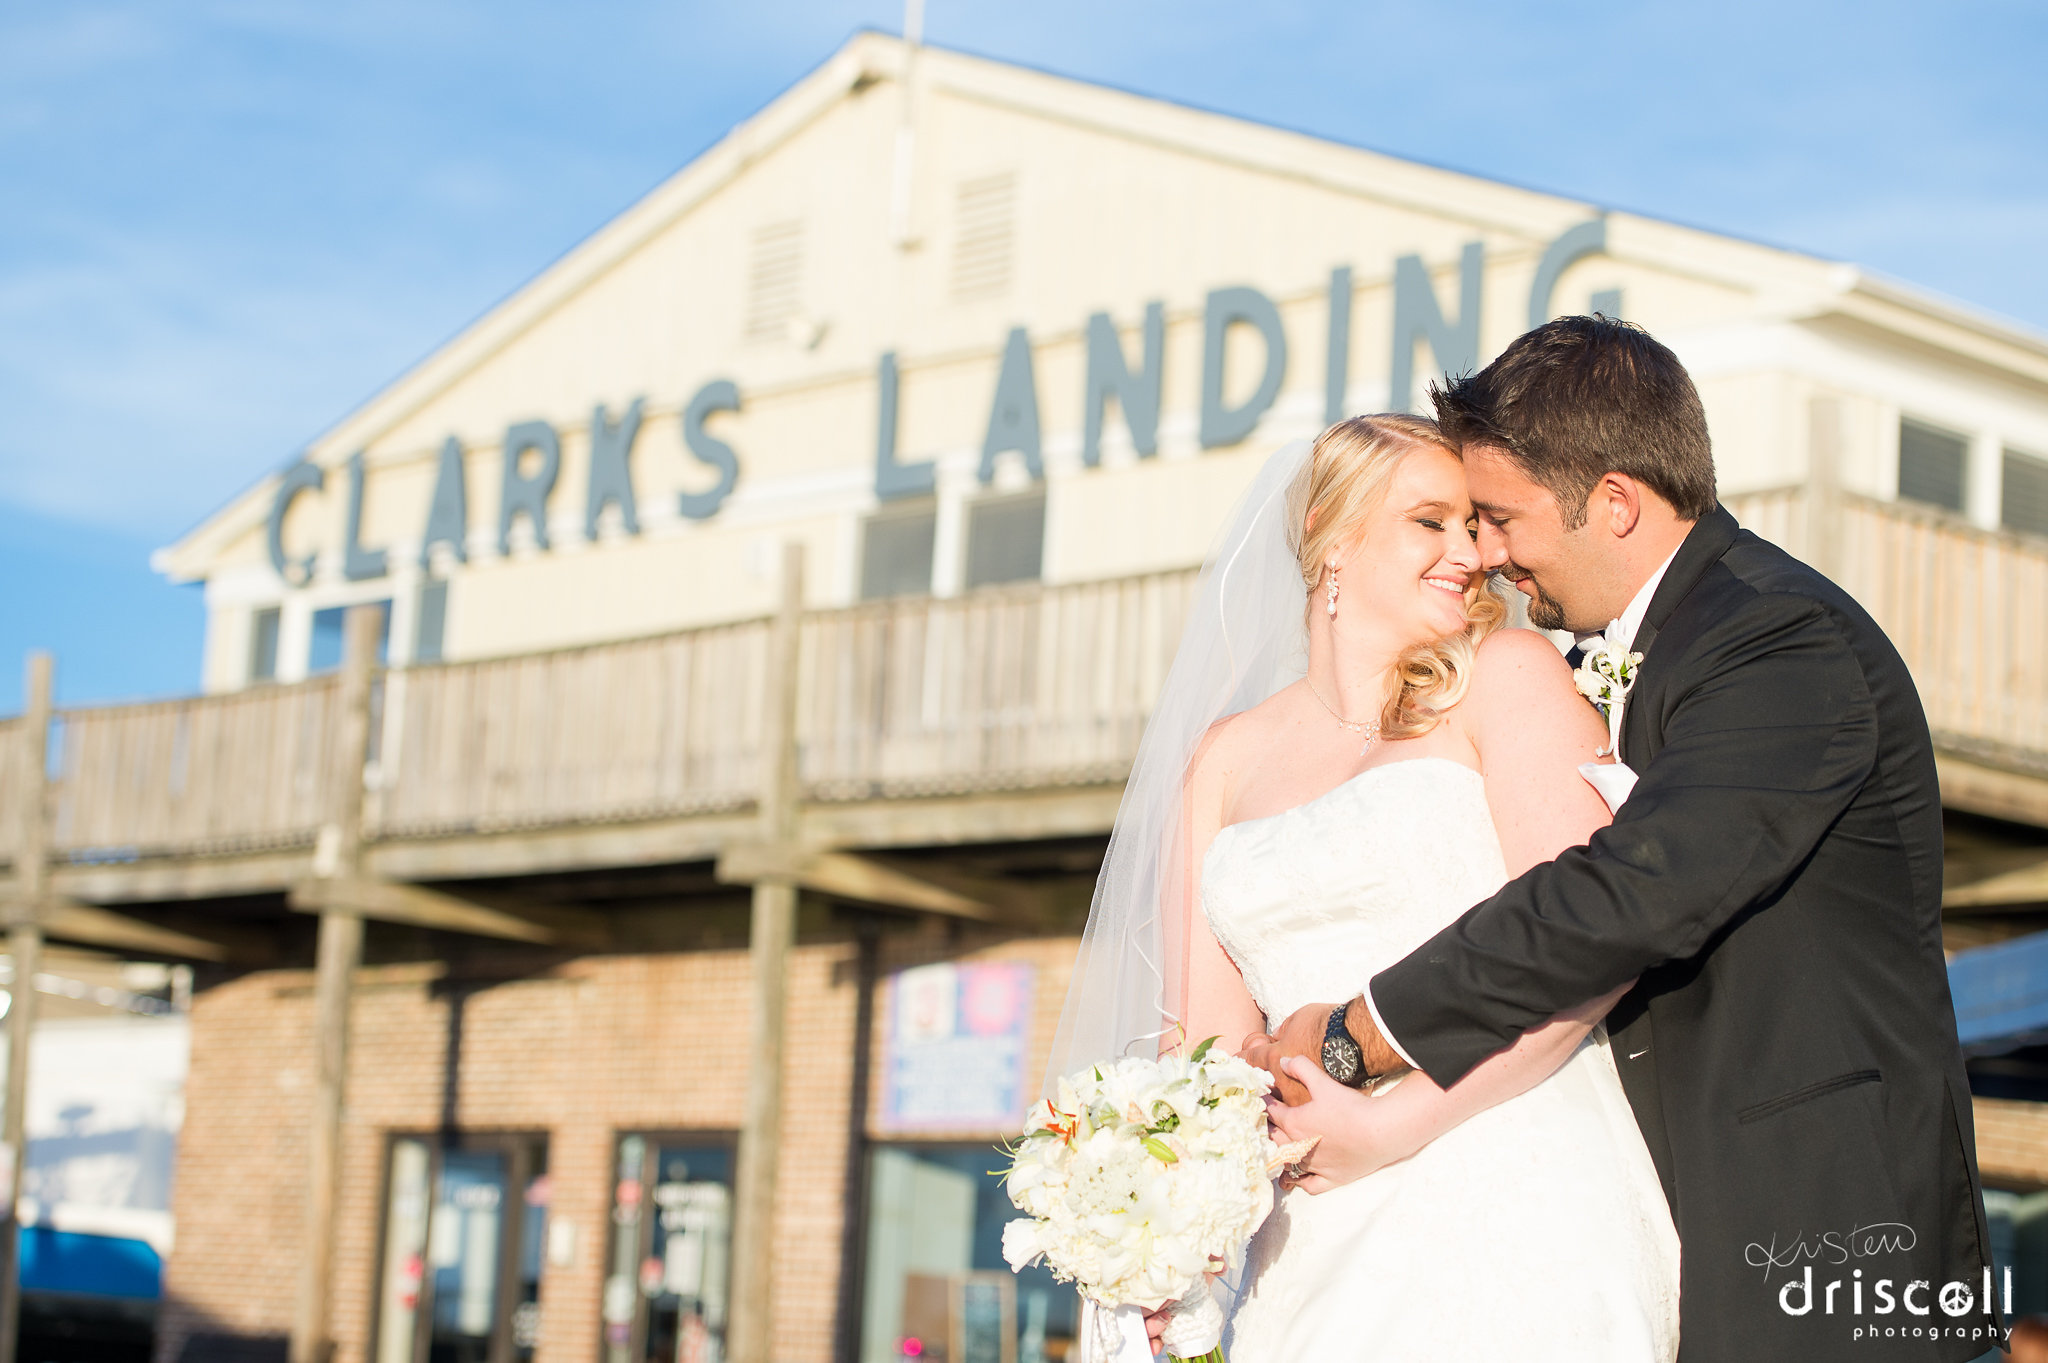 clarks-landing-wedding-photographer-kristen-driscoll-photography-20140829-5769